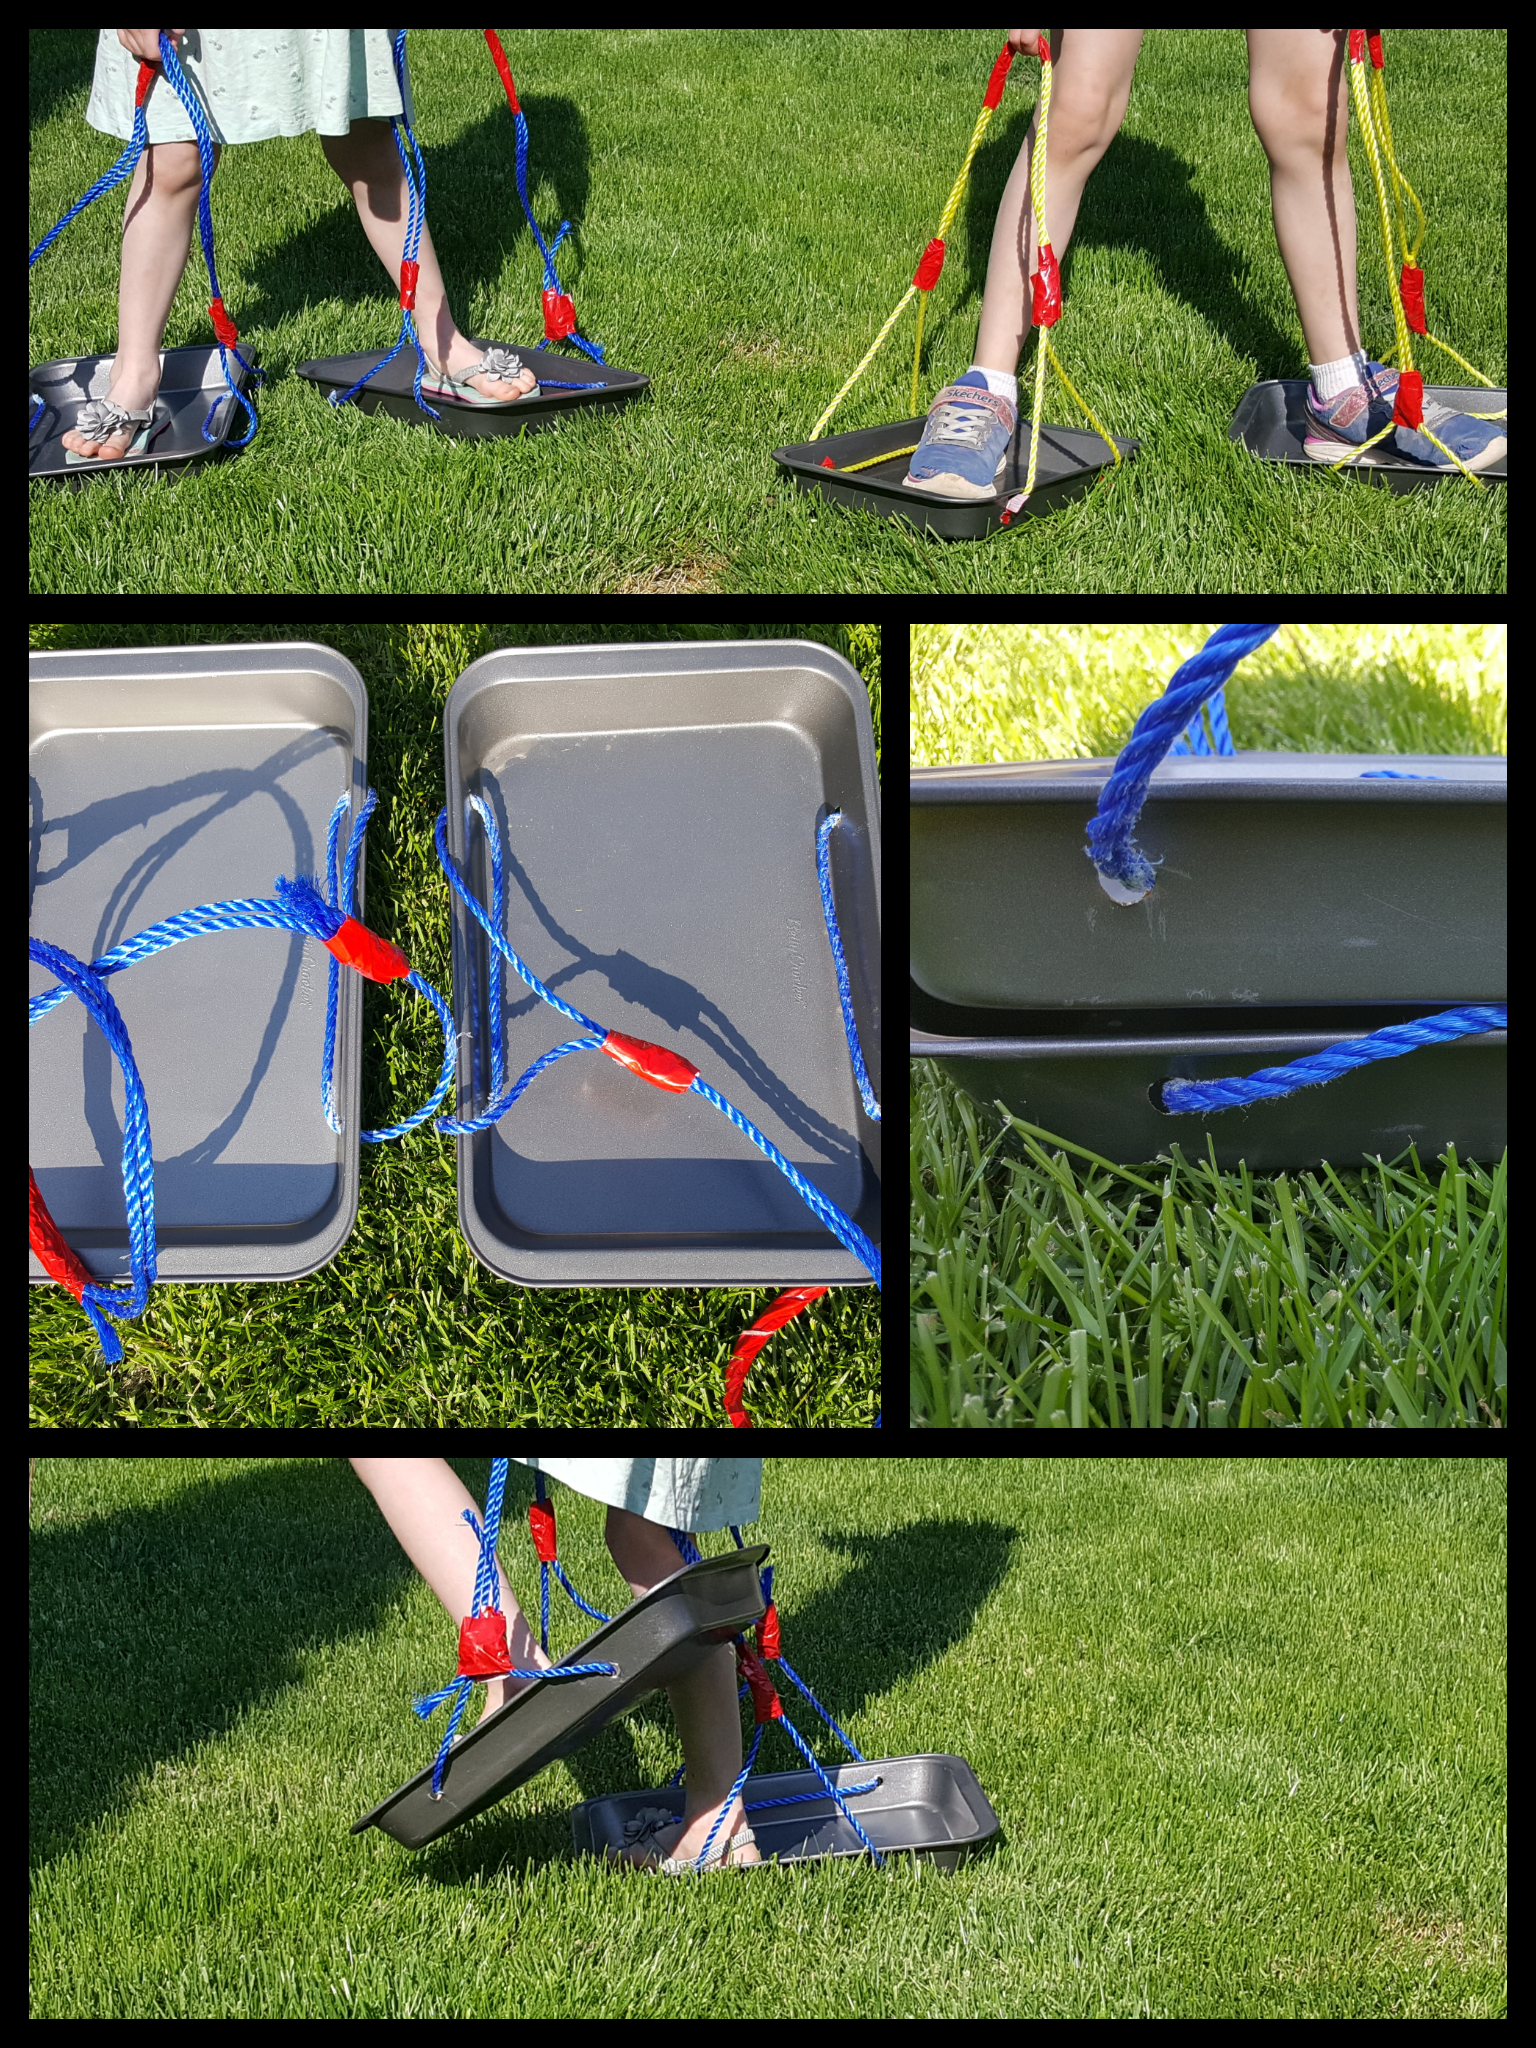 Relay Race Idea – Slider Shoes